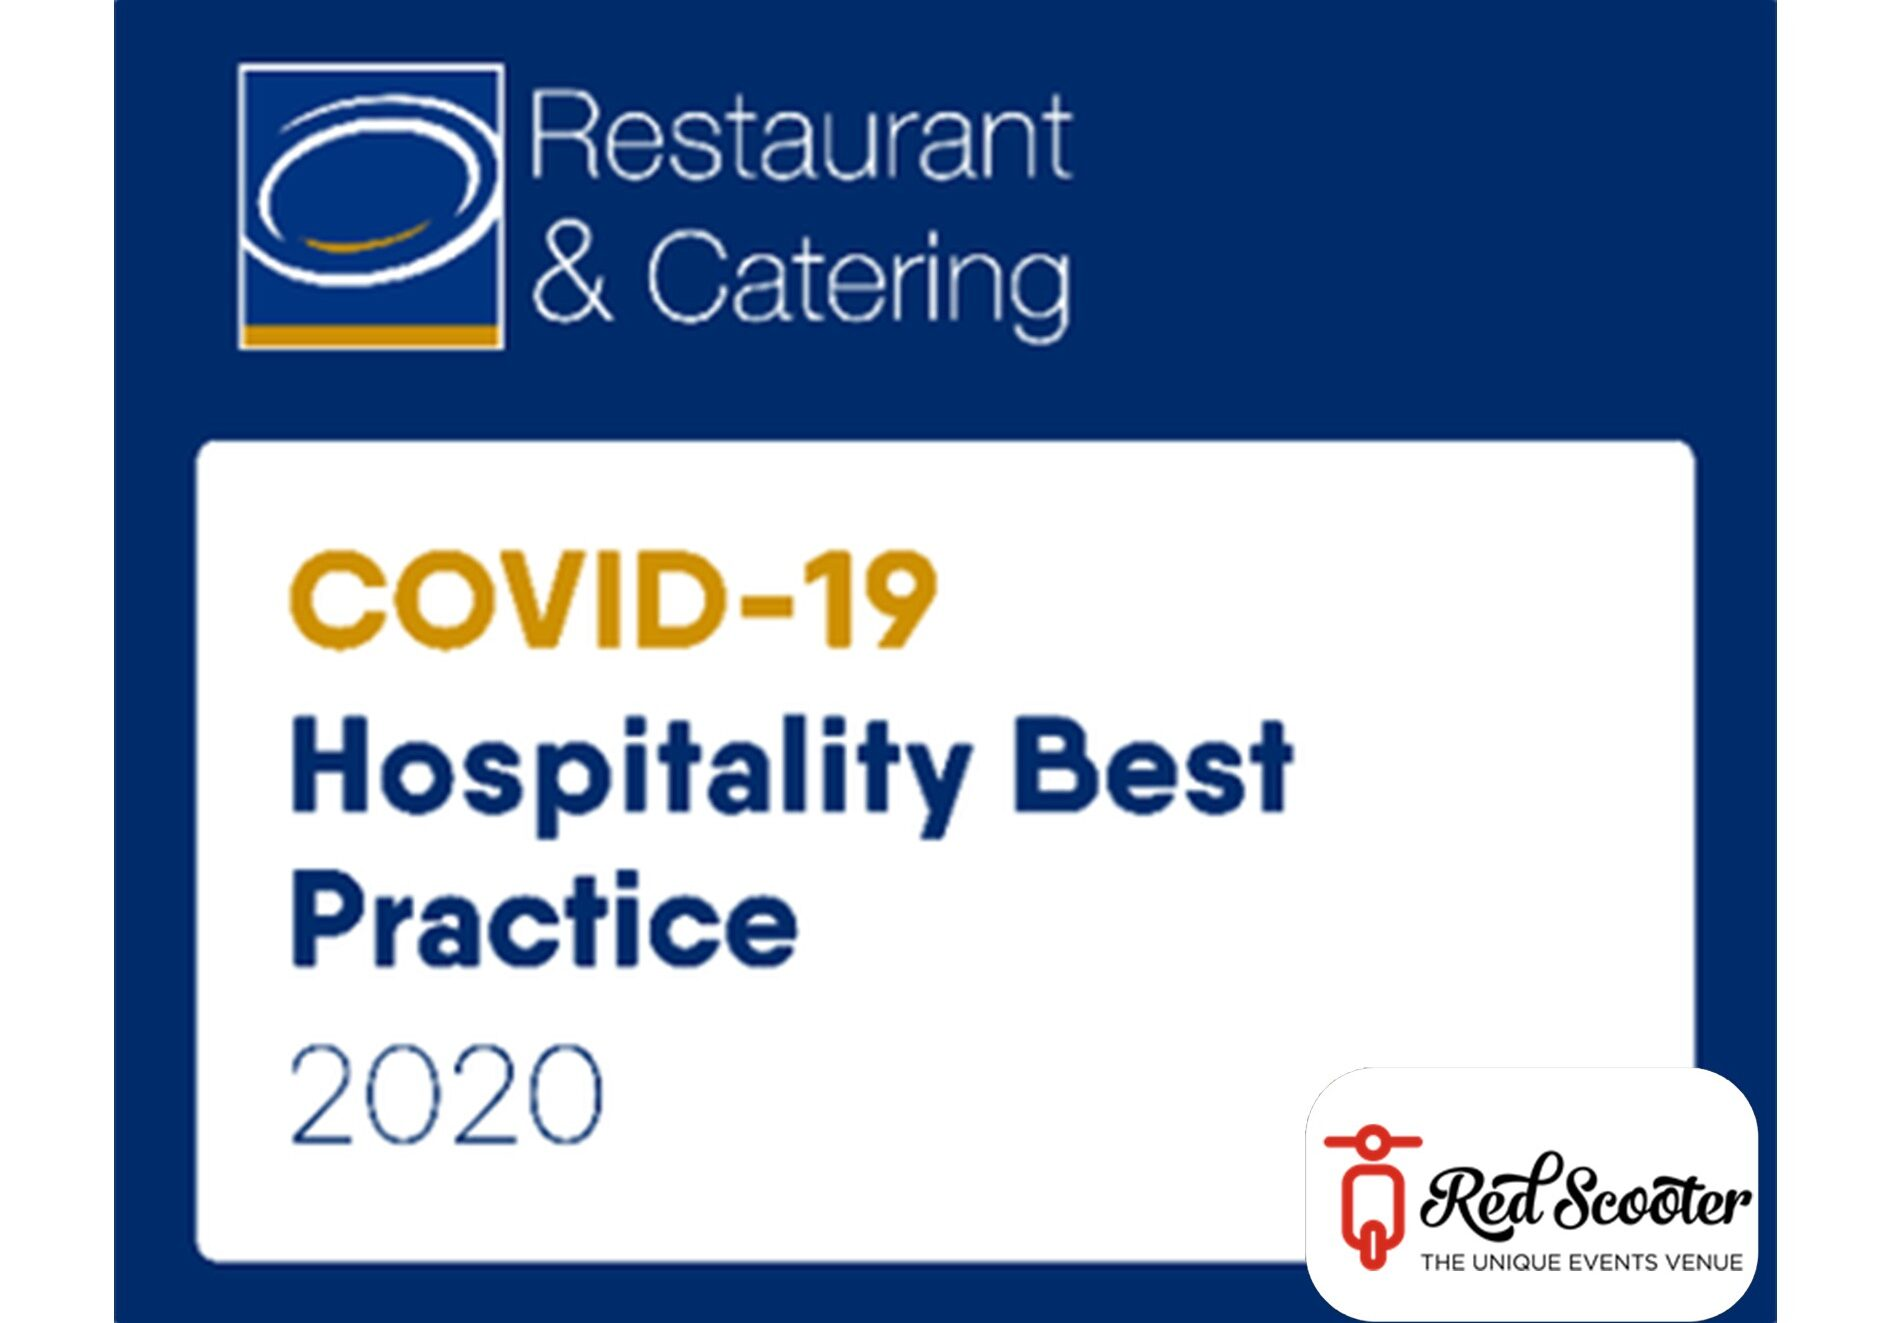 COVID-19 HOSPITALITY BEST PRACTICE 2020